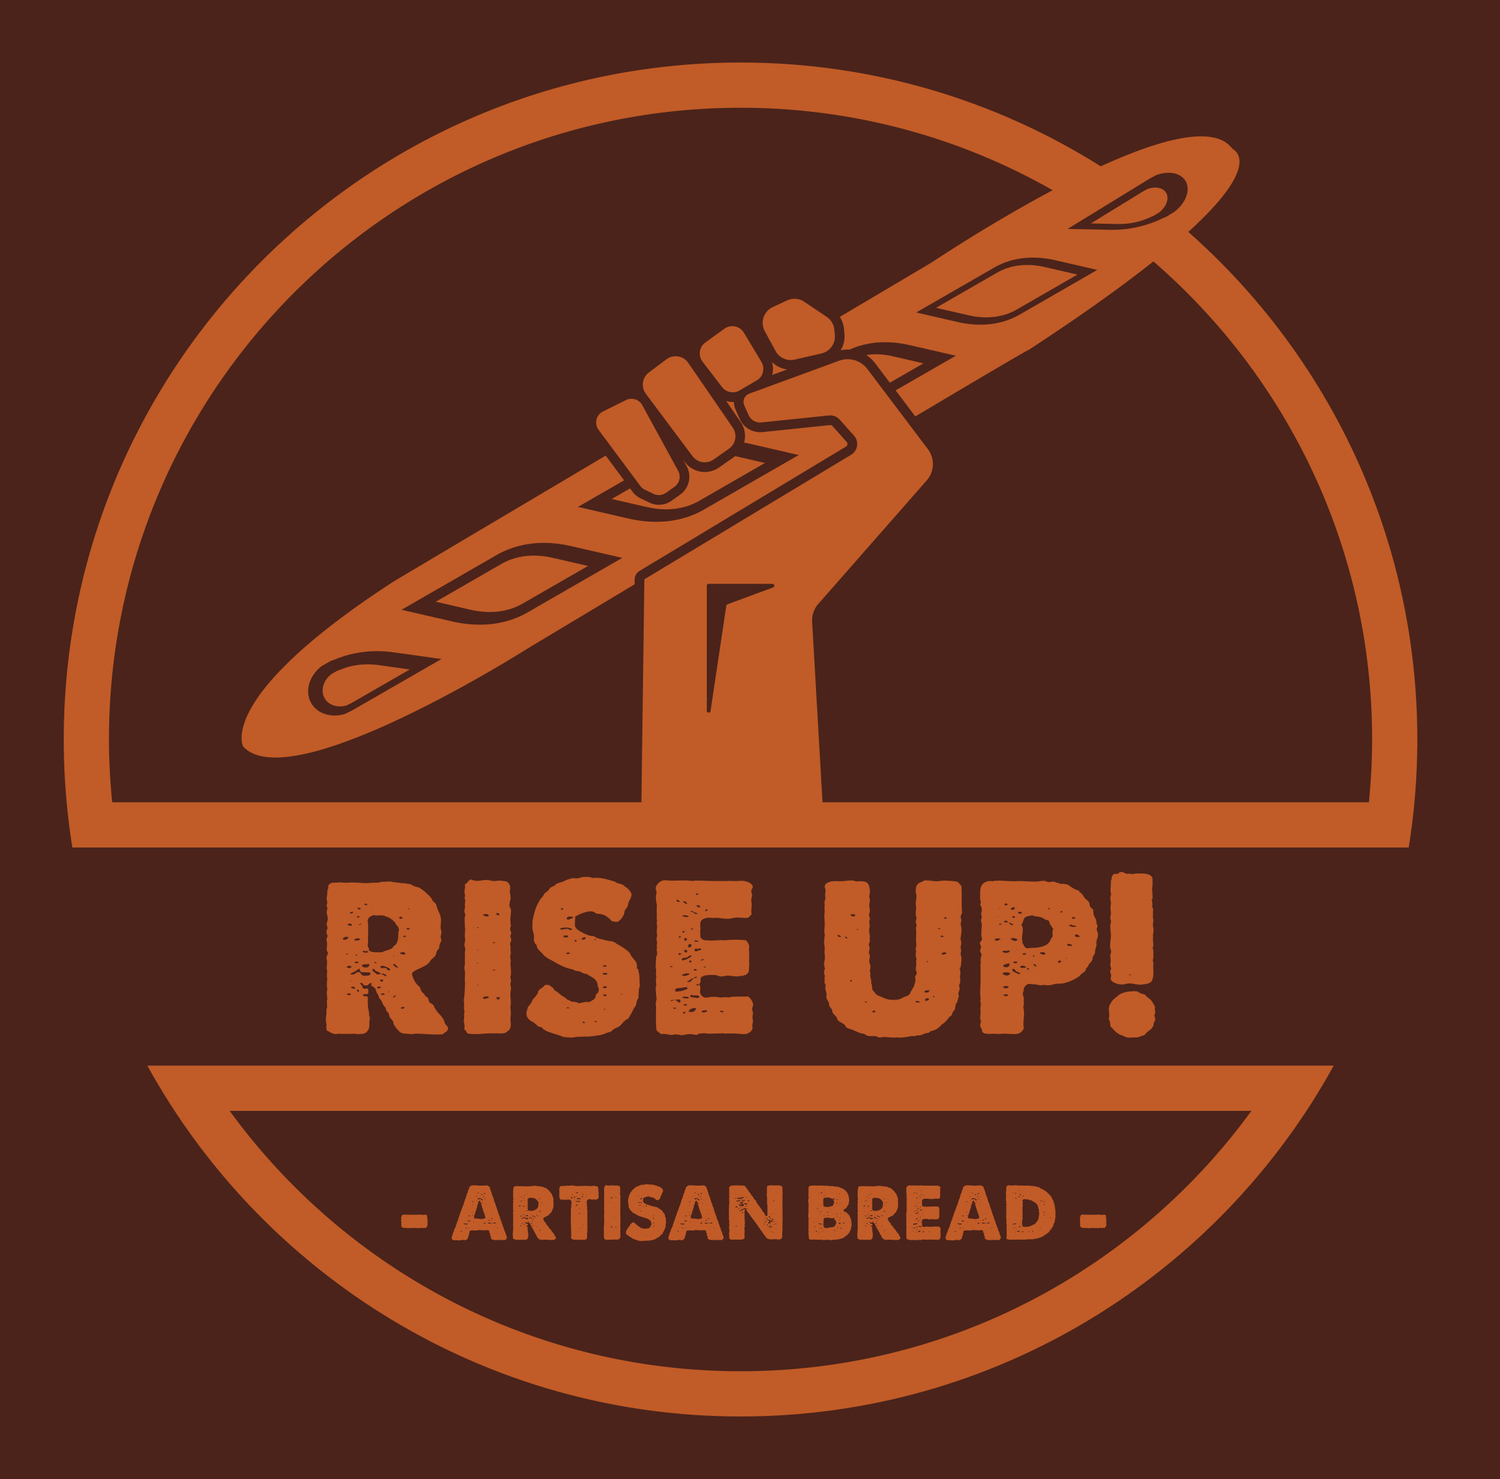 Rise Up! Artisan Breads